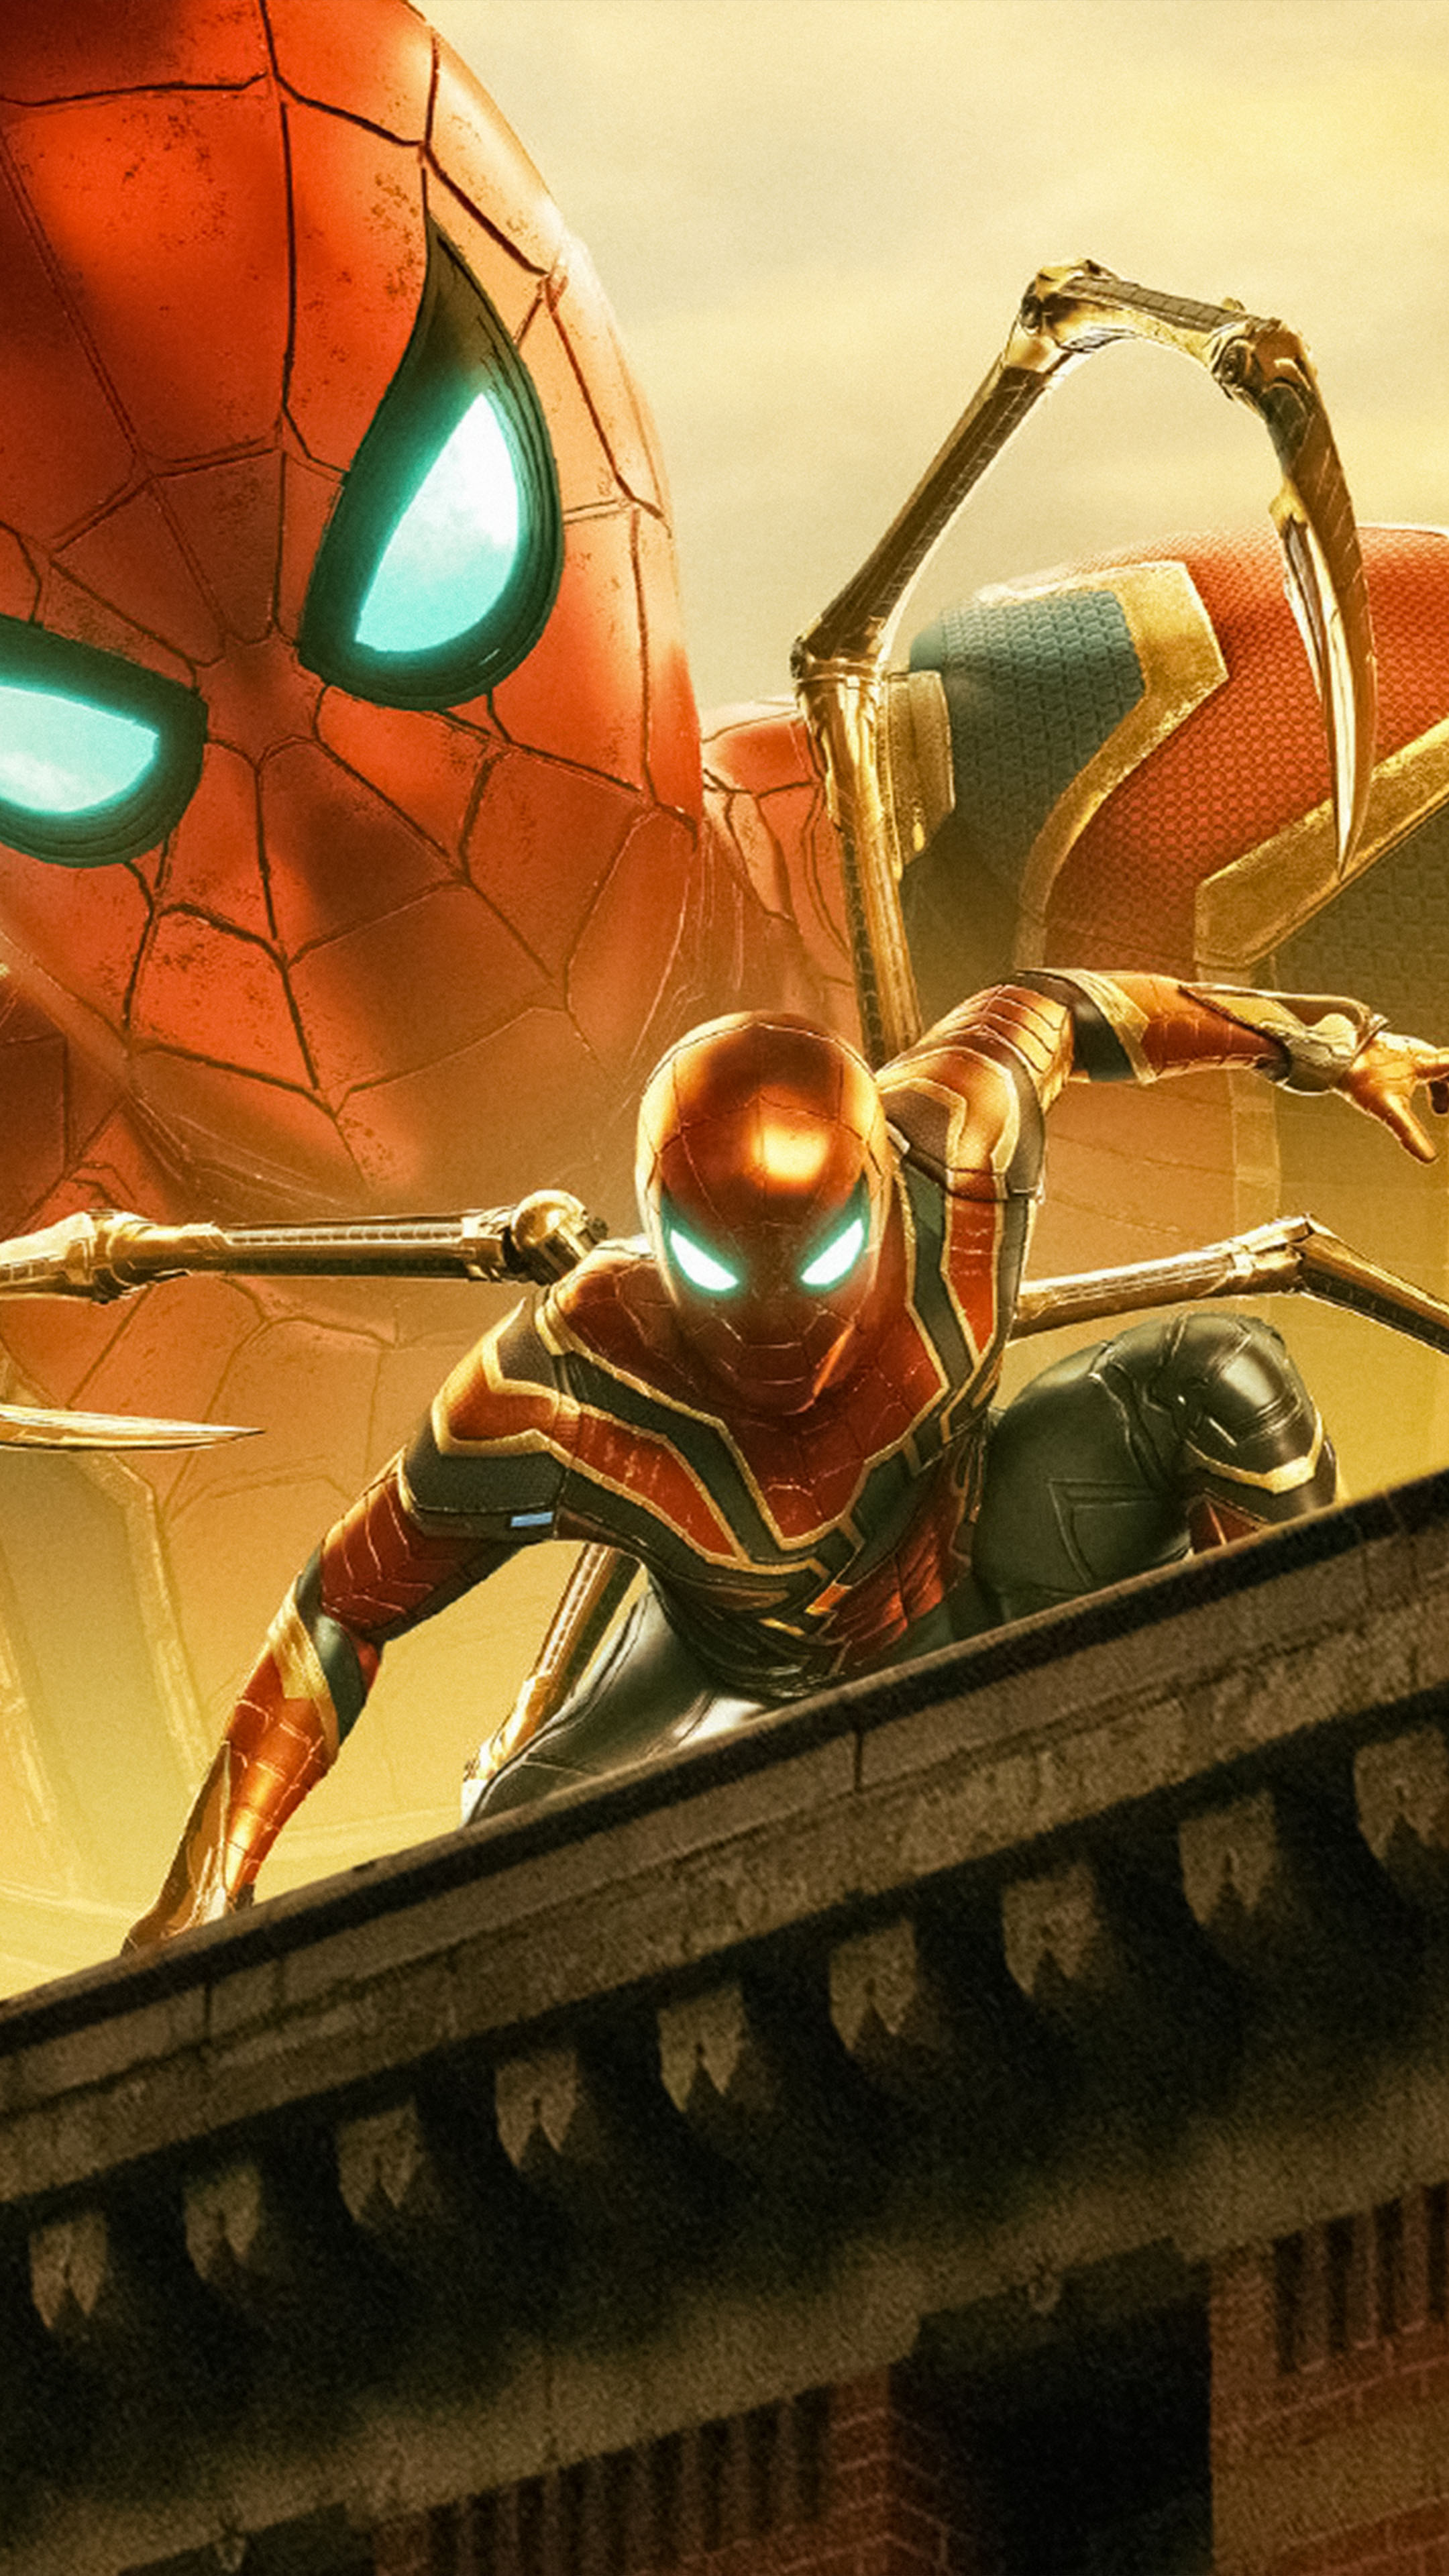 Iron Spider Spider Man Far From Home 2019 4k Ultra Hd Mobile Wallpaper